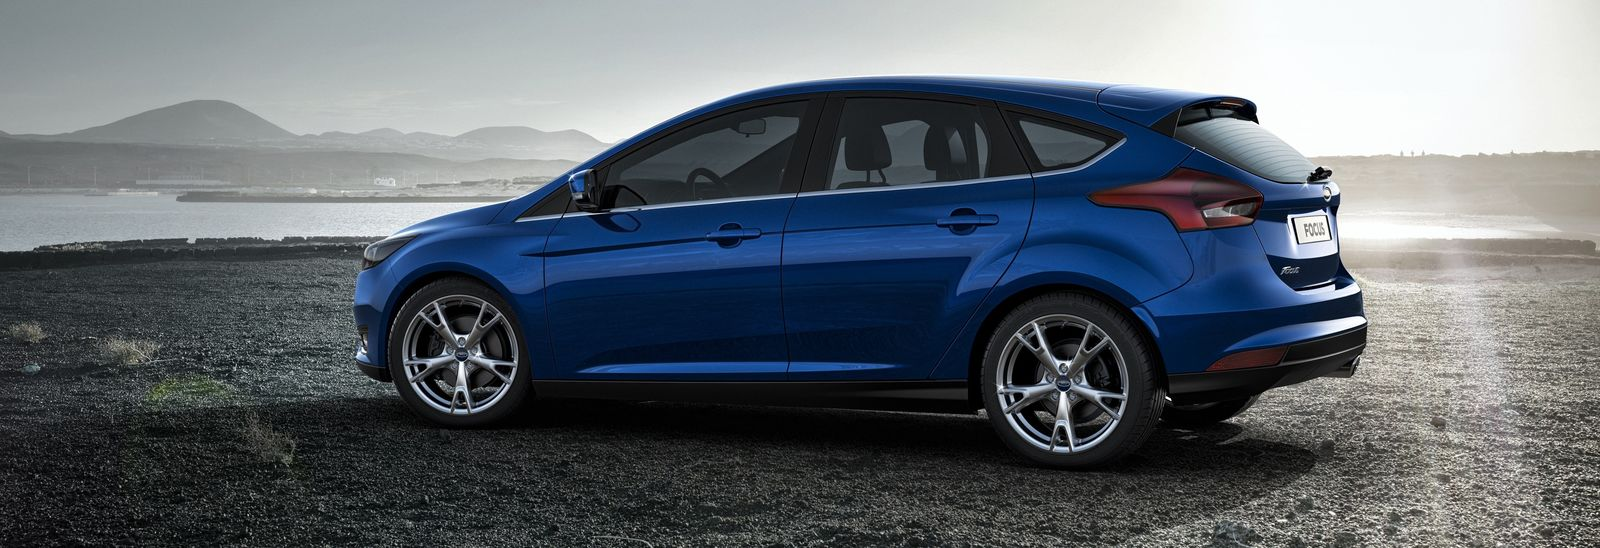 Focus St Line Deep Impact Blue >> Ford Focus options – which should you buy? | carwow